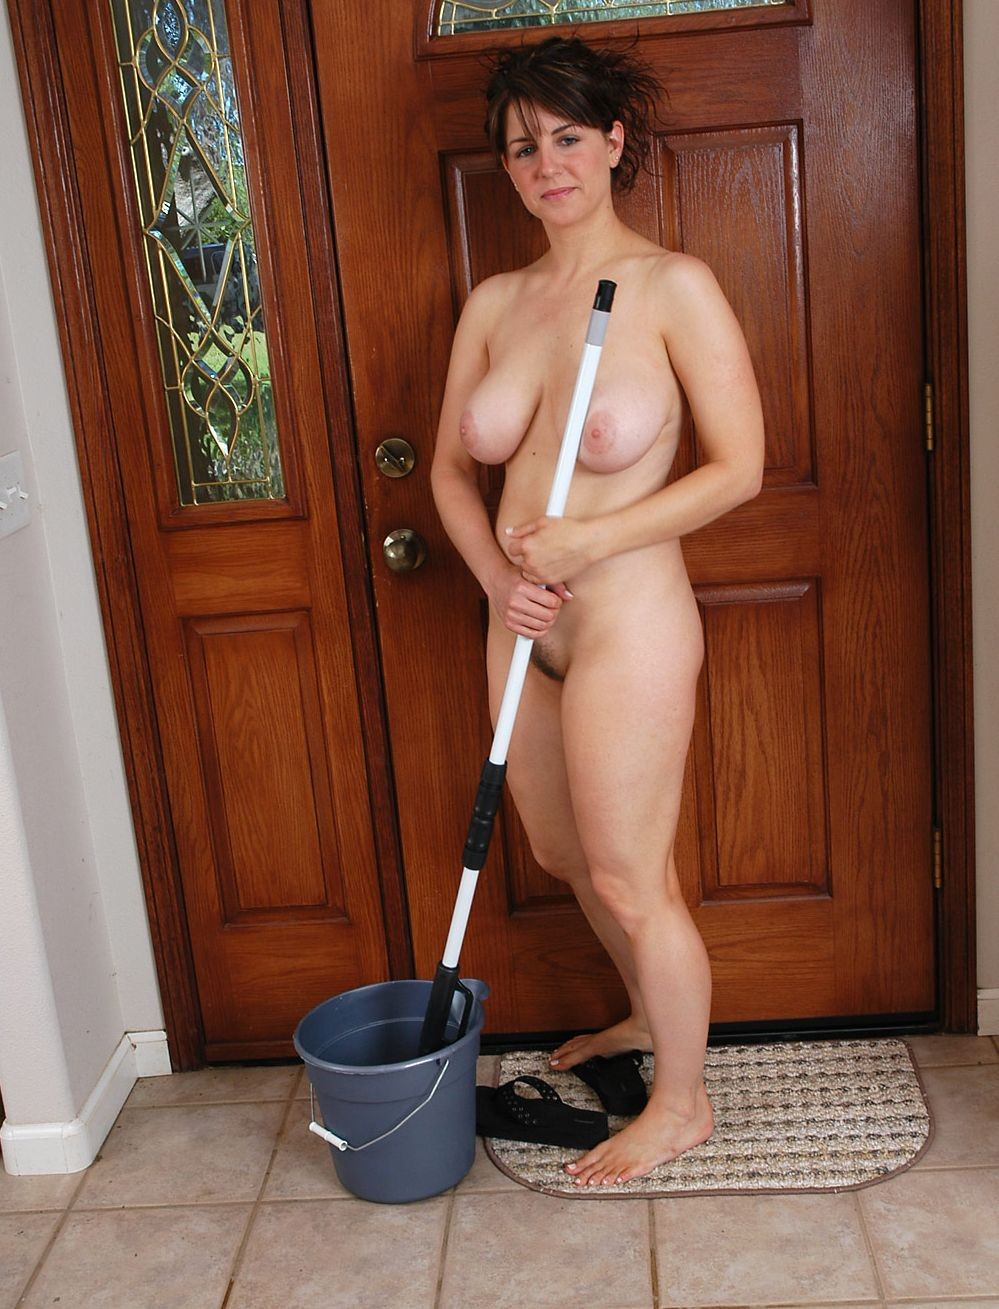 Hot women nude doing housework, ten redhead porn stars